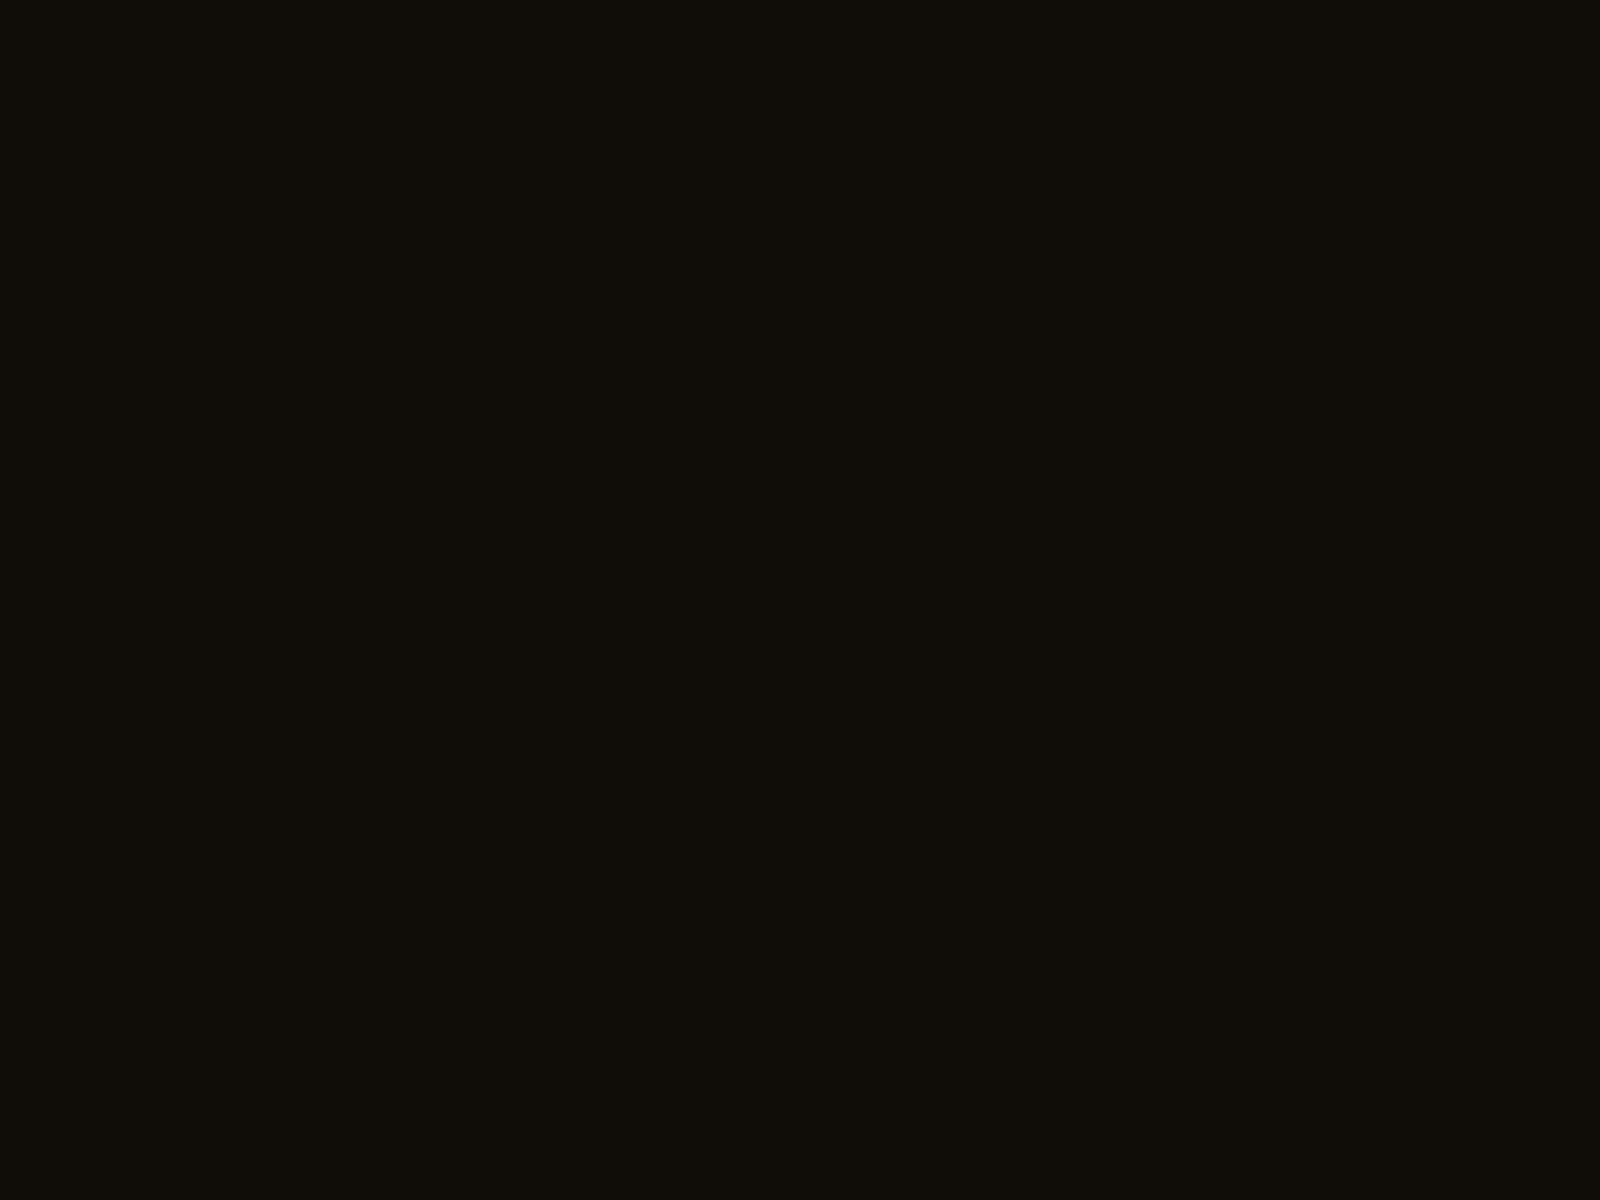 1600x1200 Smoky Black Solid Color Background